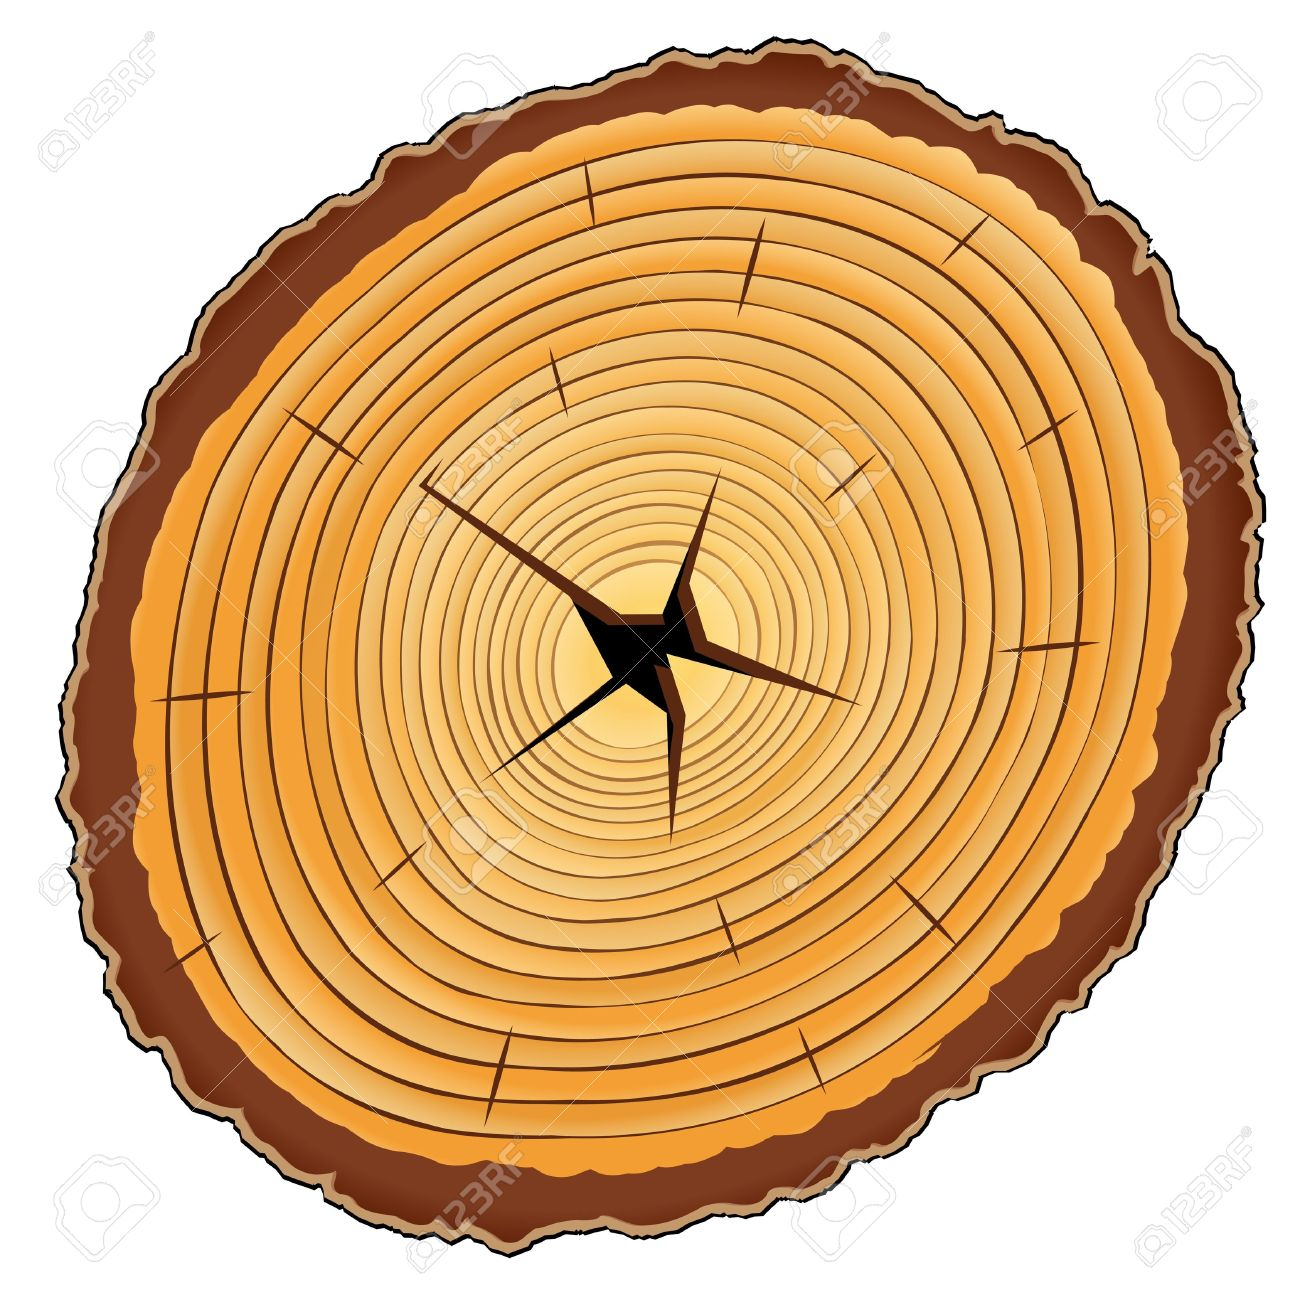 Tree ring clipart #4